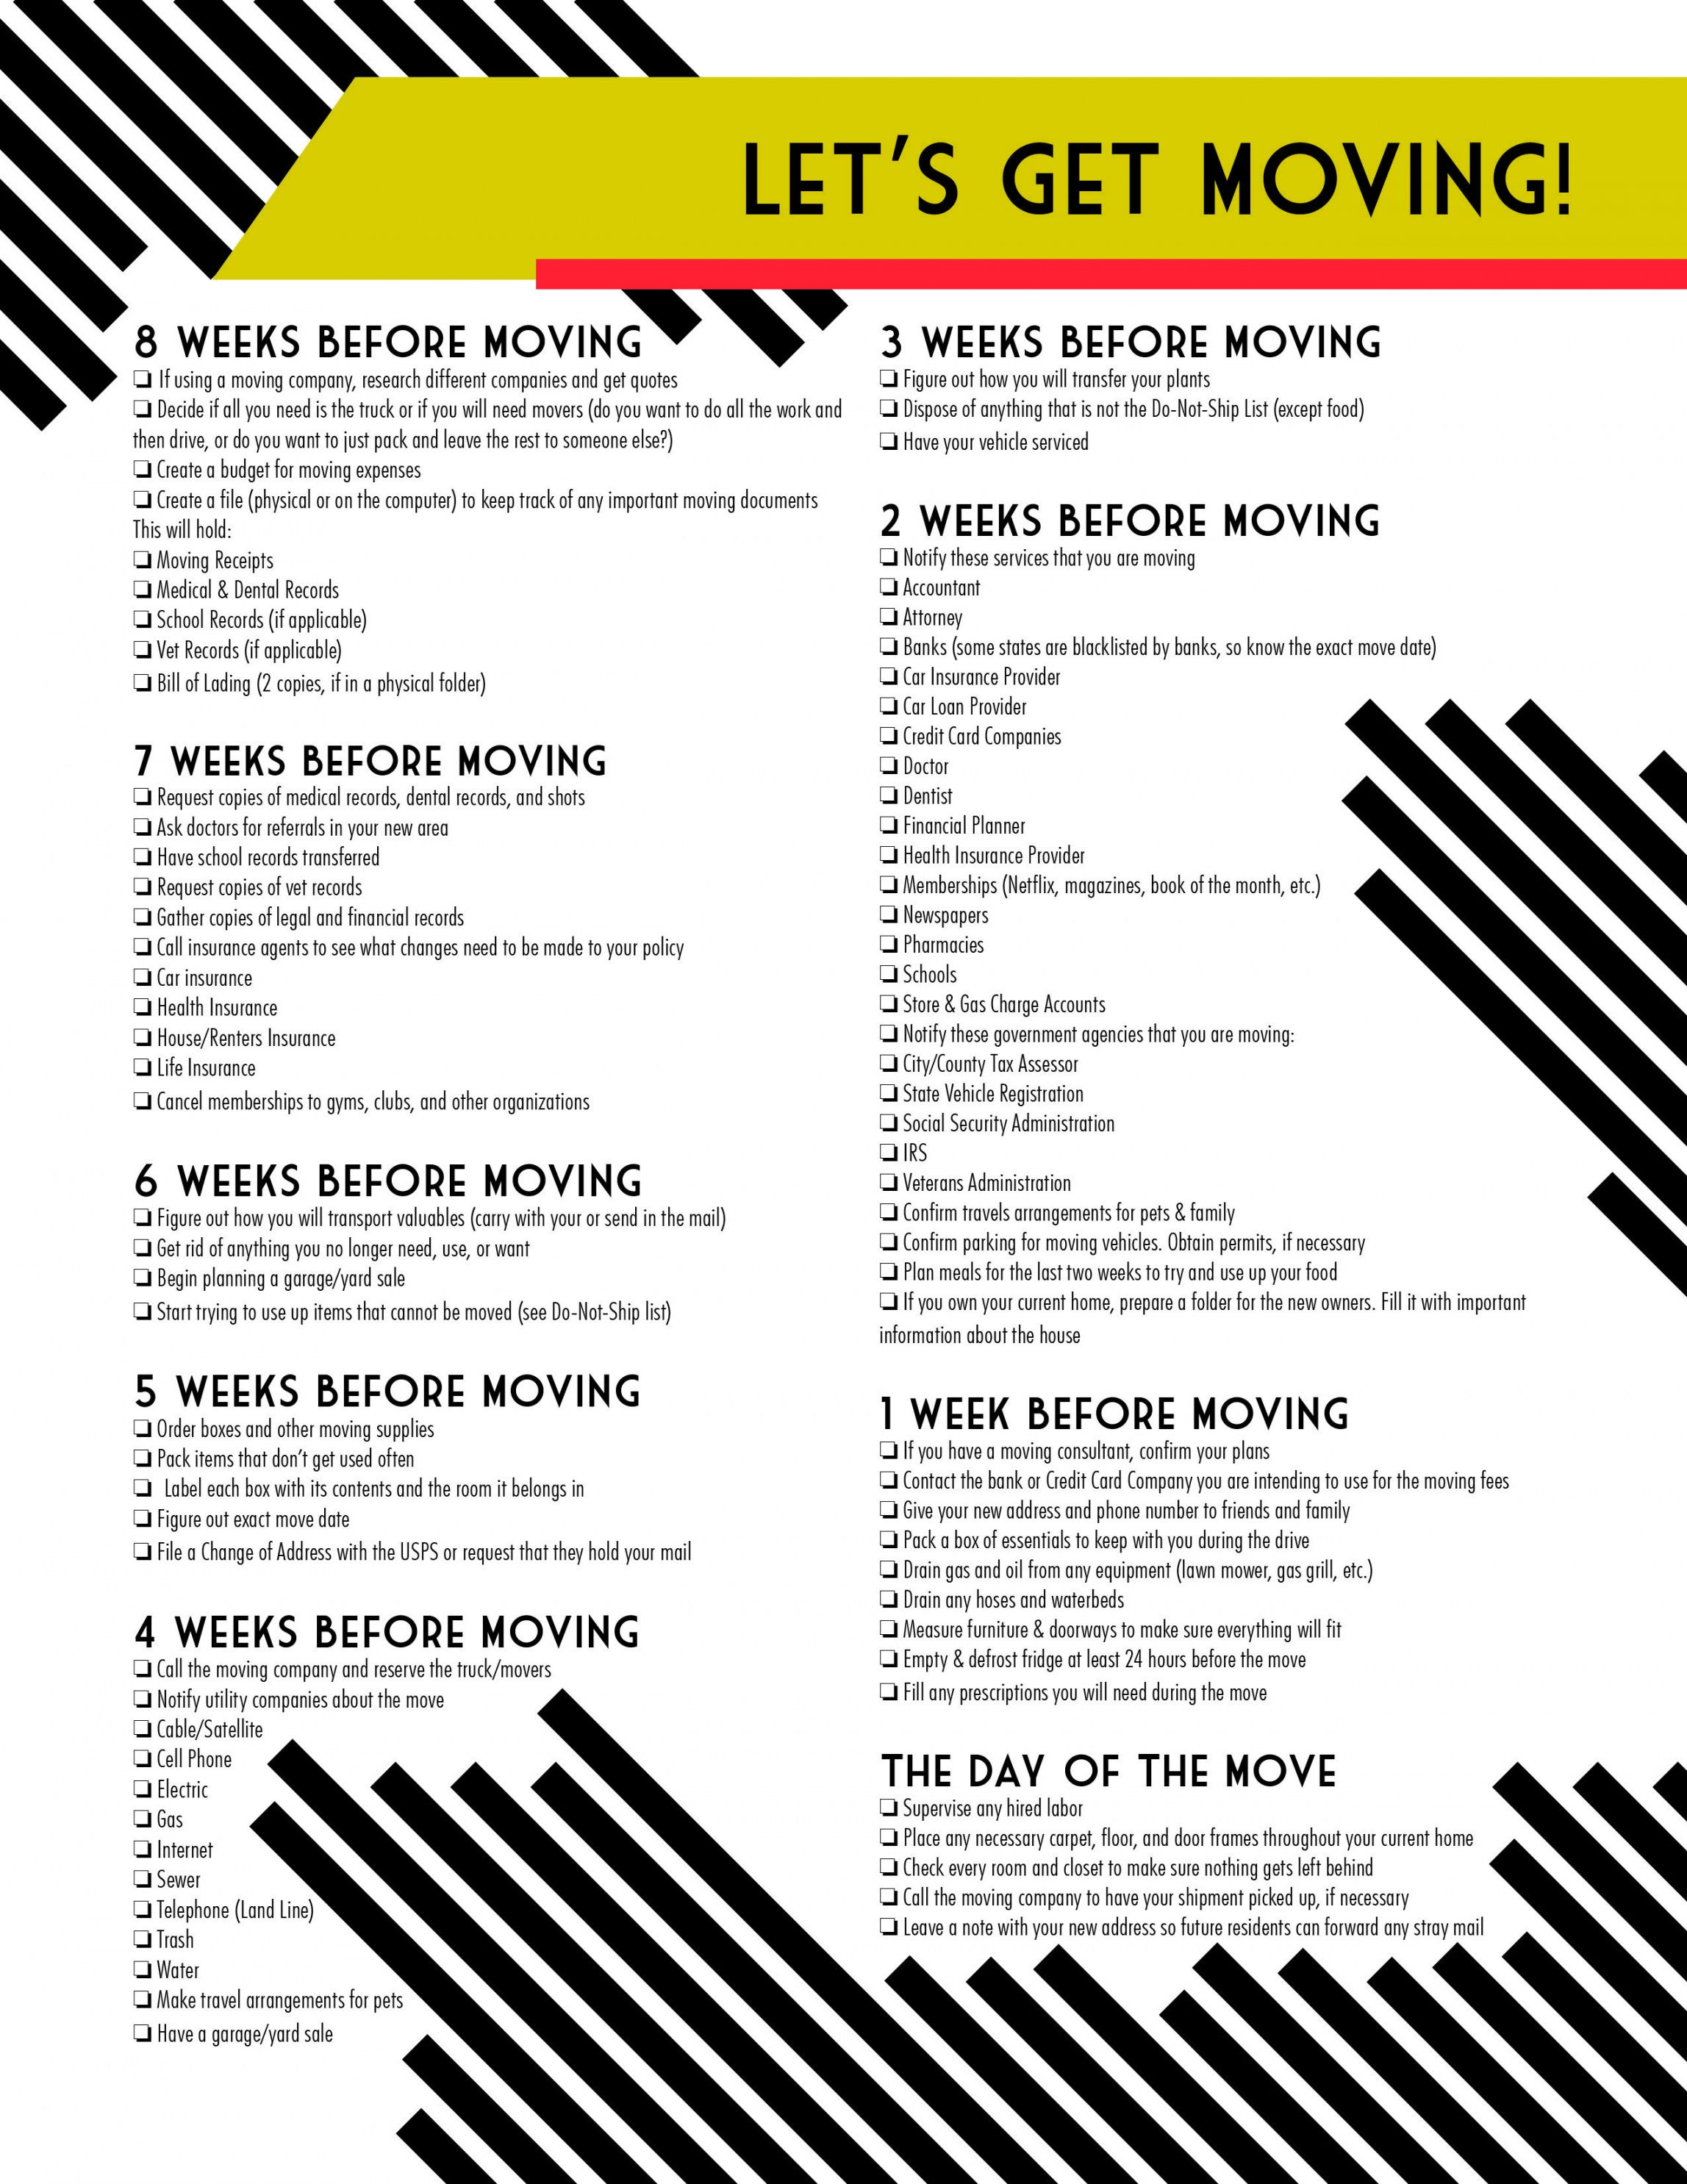 editable moving checklist utilities ontario new house uk  martinforfreedom house moving checklist template doc